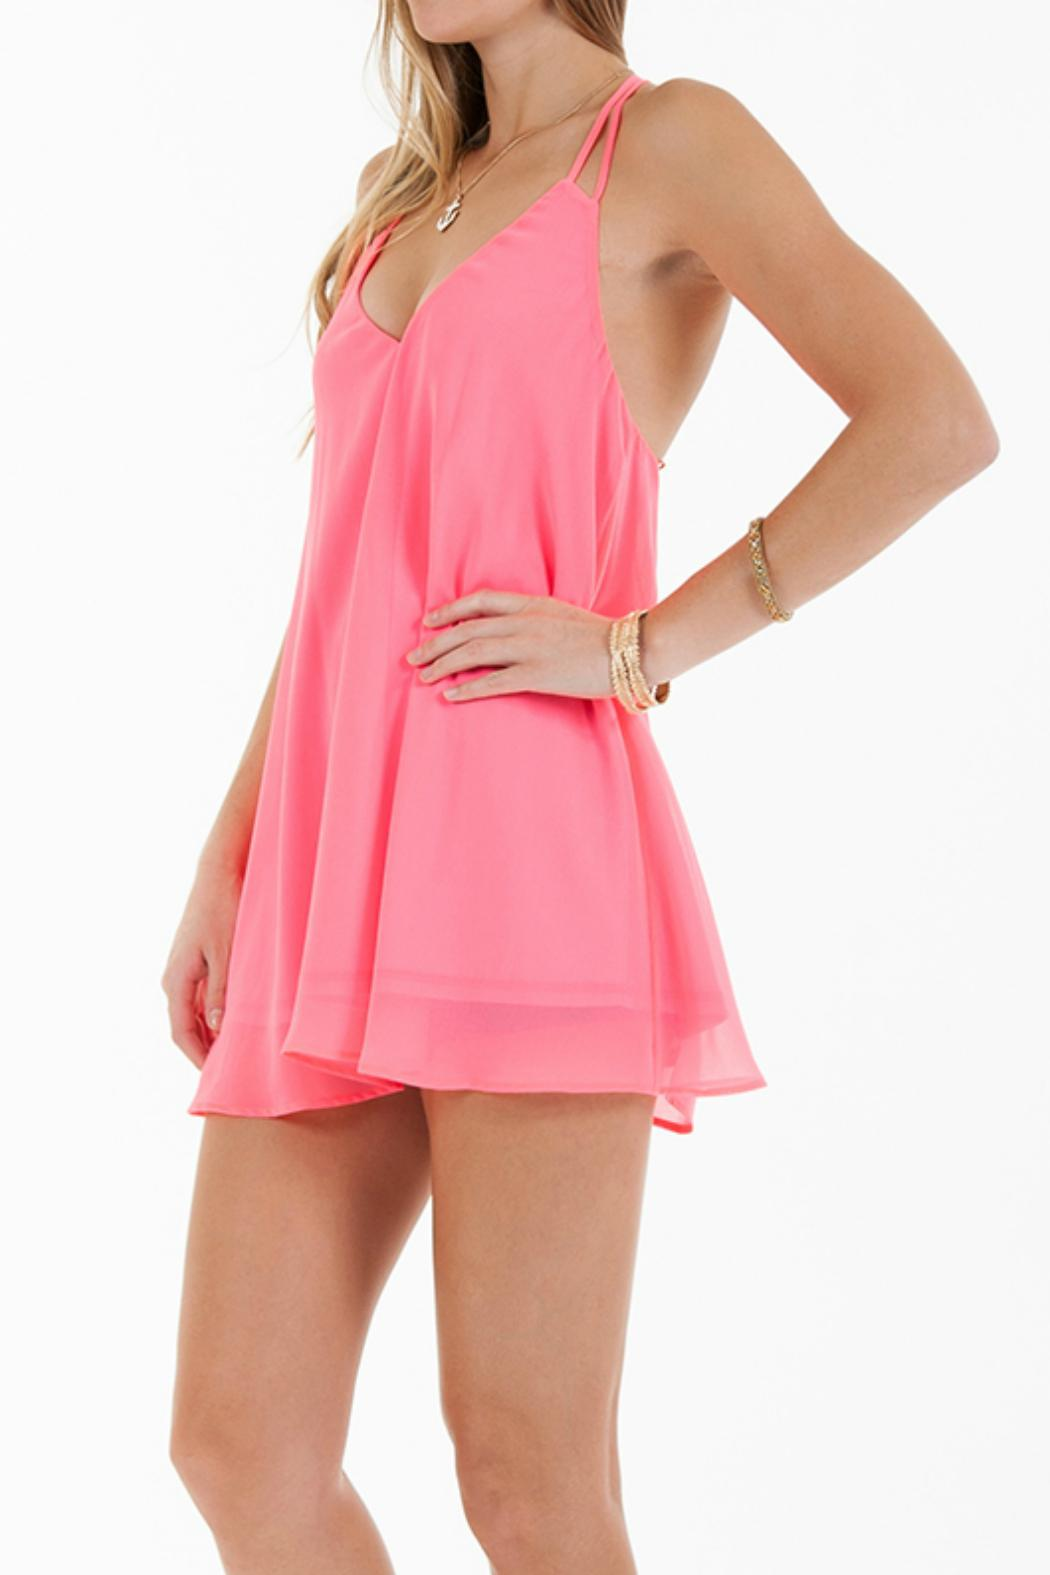 Double Zero Neon Pink Shift-Dress - Side Cropped Image